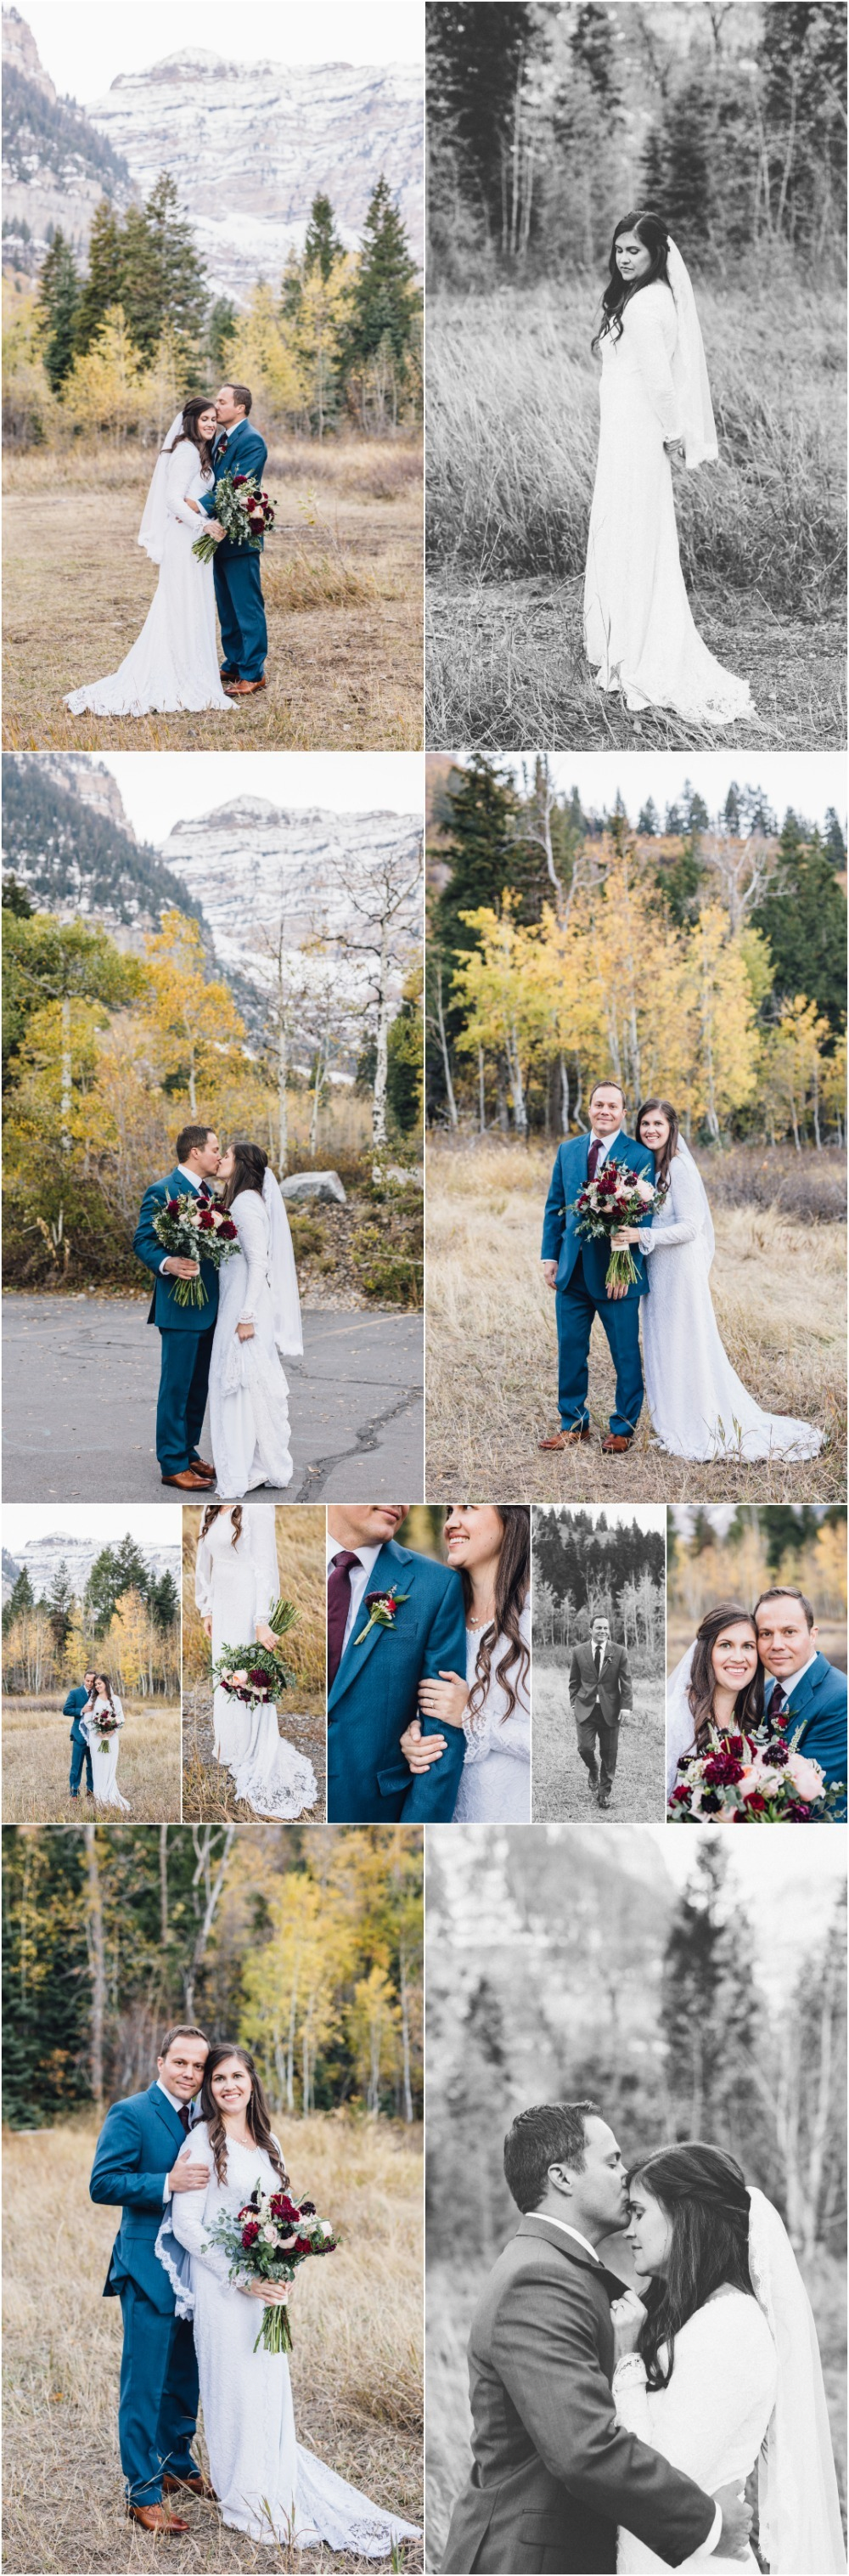 Aspen Grove Bridal Photographer